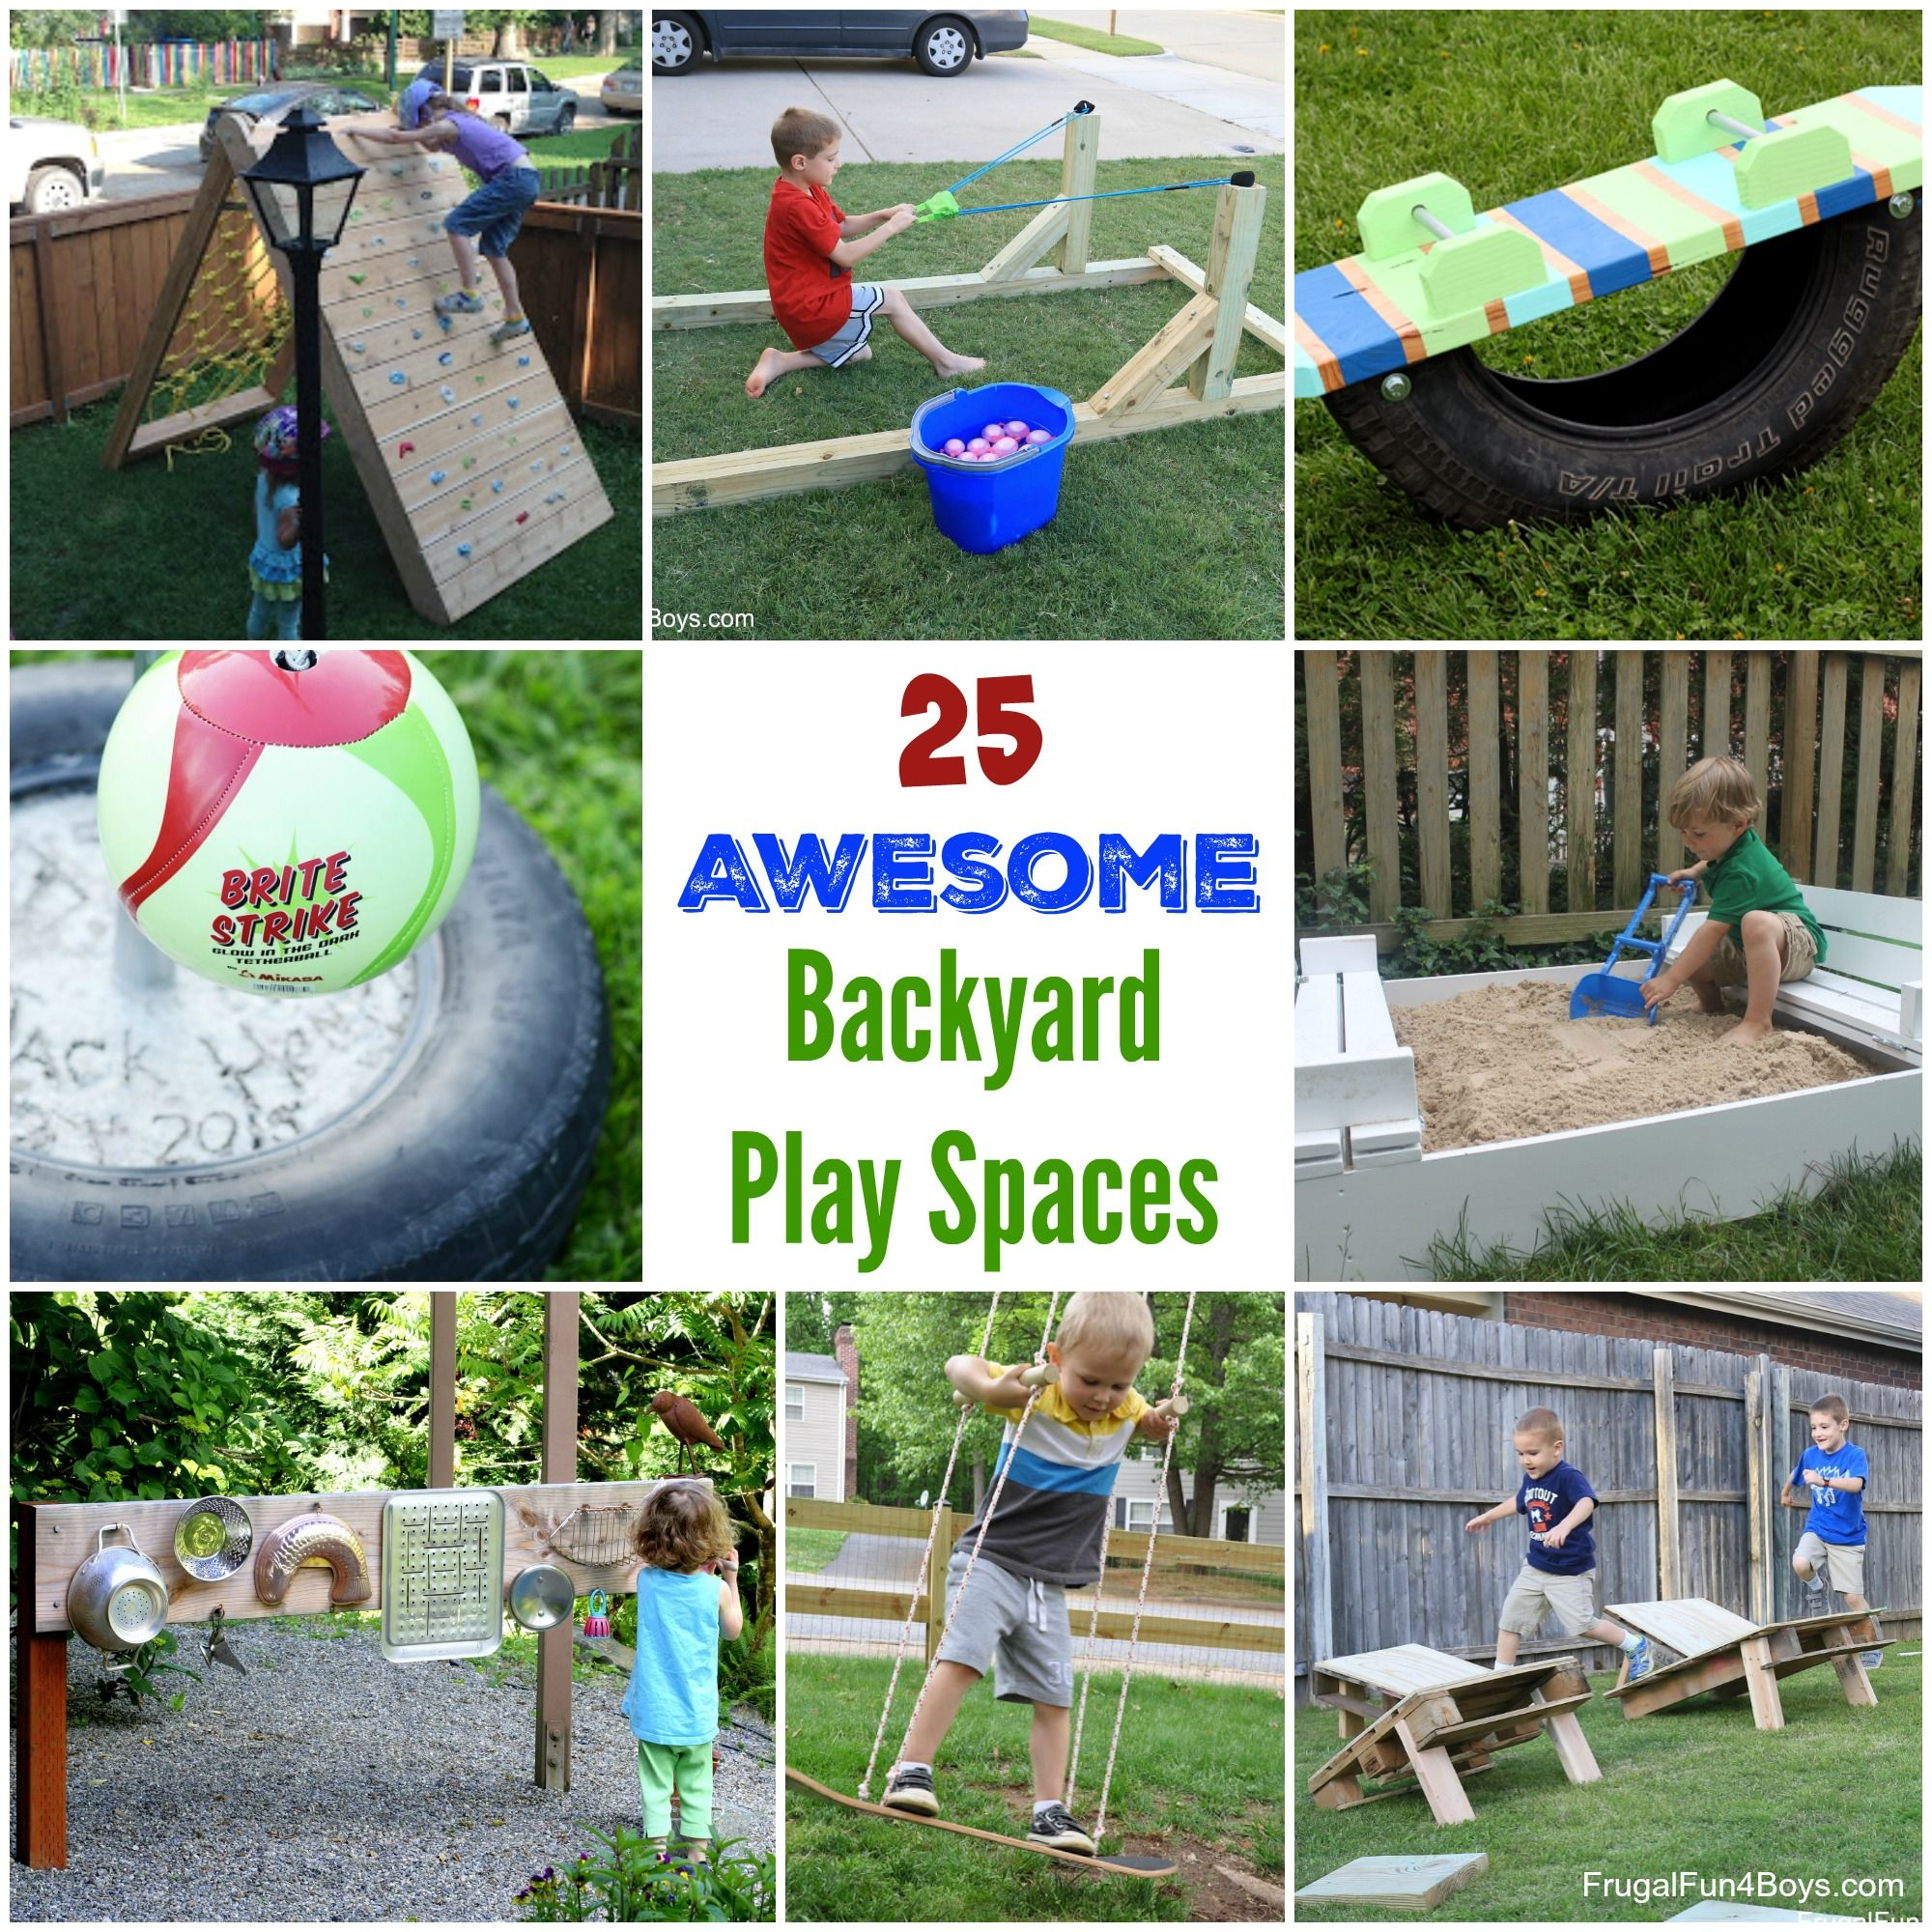 25 Awesome Backyard Play Spaces   Build Climbing Structures, Outdoor Toys,  And More!